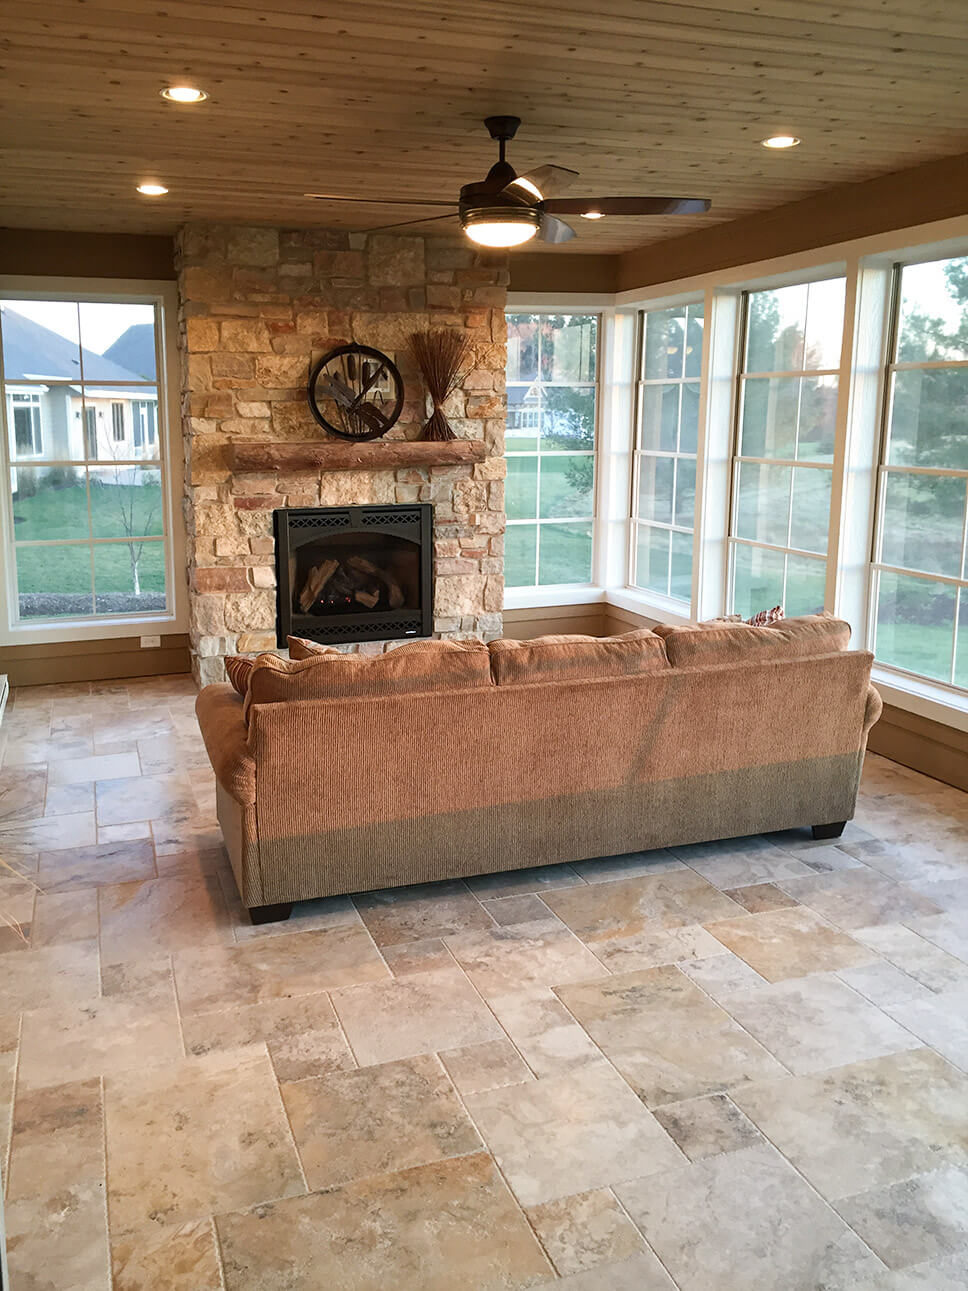 Three seasons room from 2015 Parade of Homes